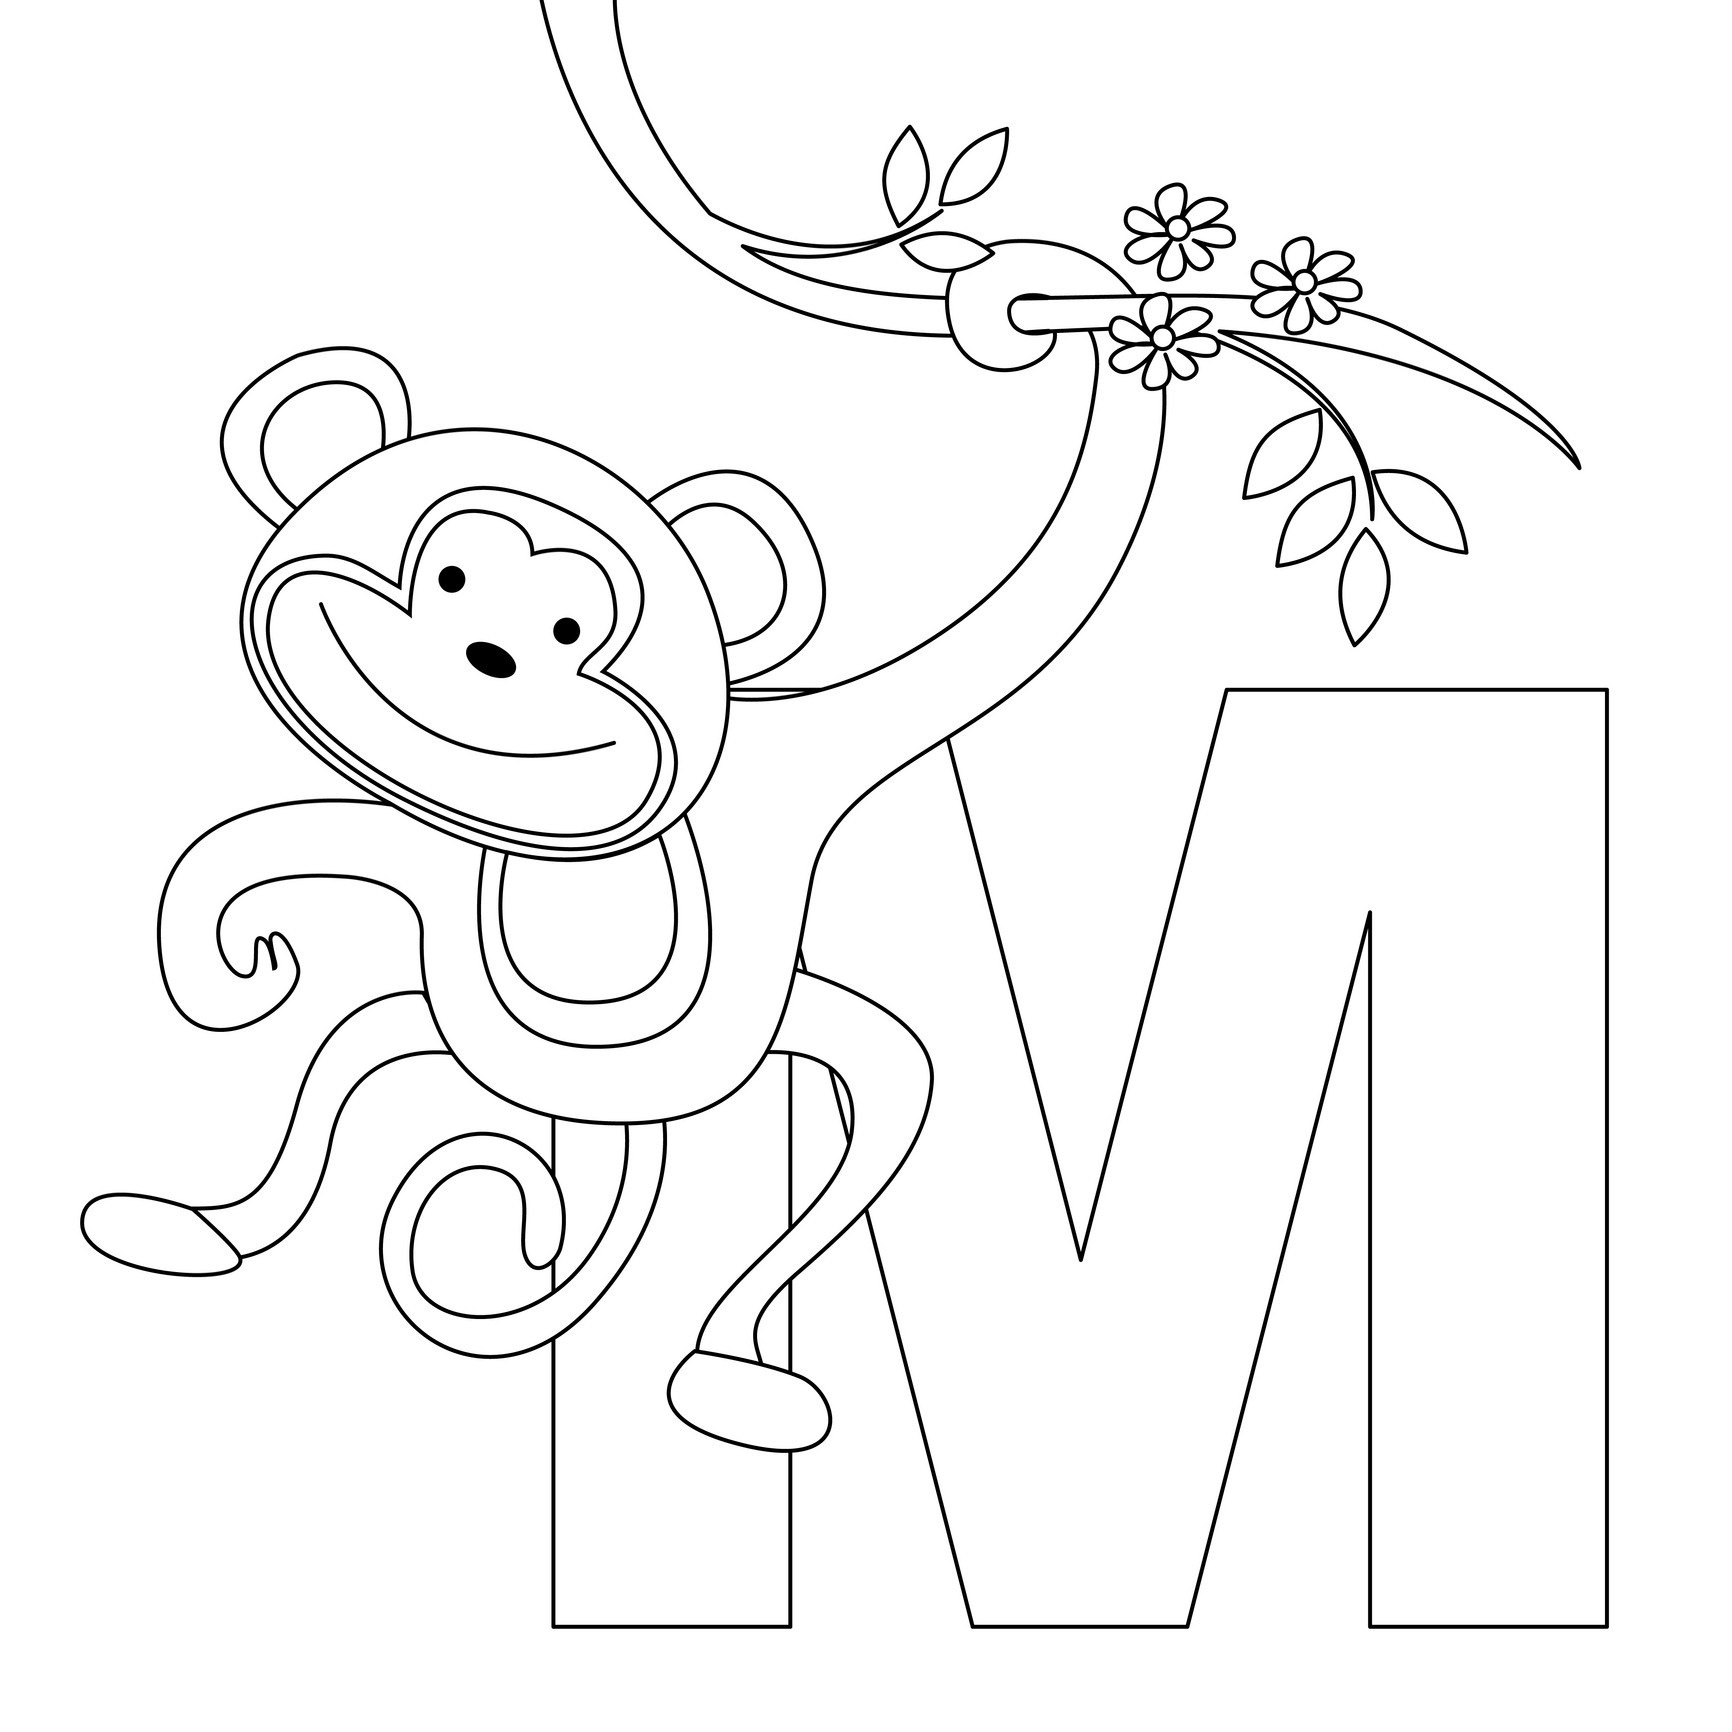 It's just a photo of Revered Monkeys Coloring Pages